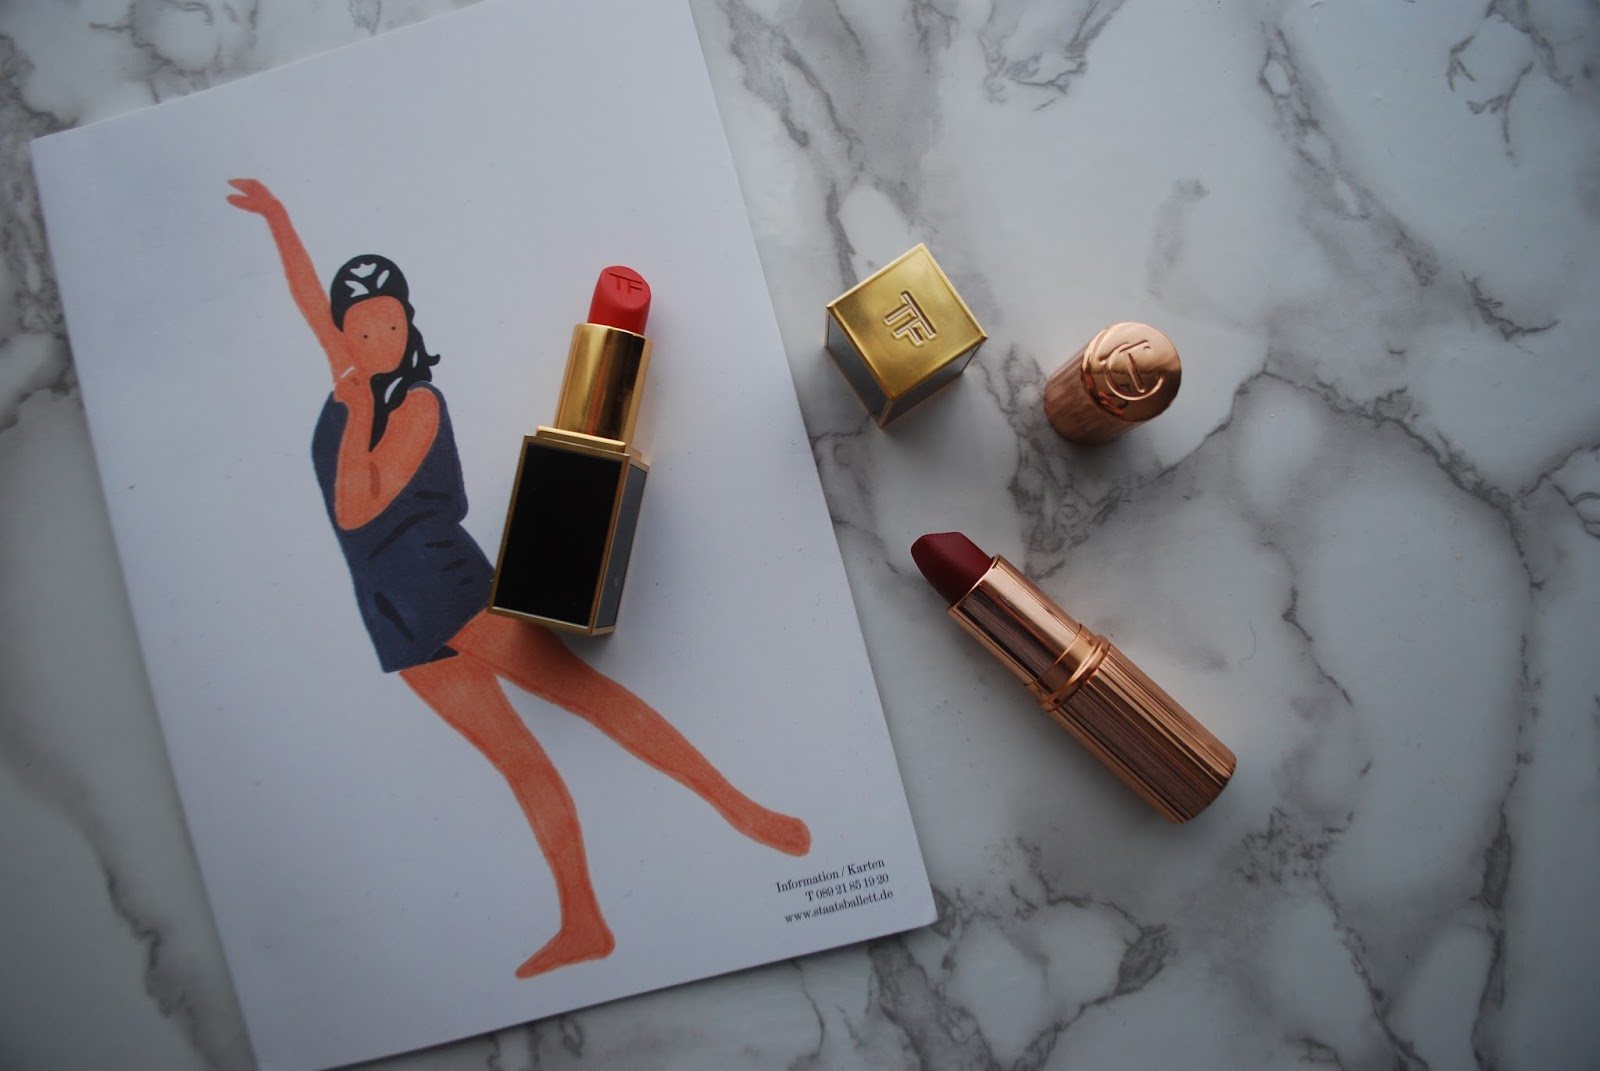 Tom Ford Wild Ginger Charlotte Tilbury Red Carpet Red lipstick swatches